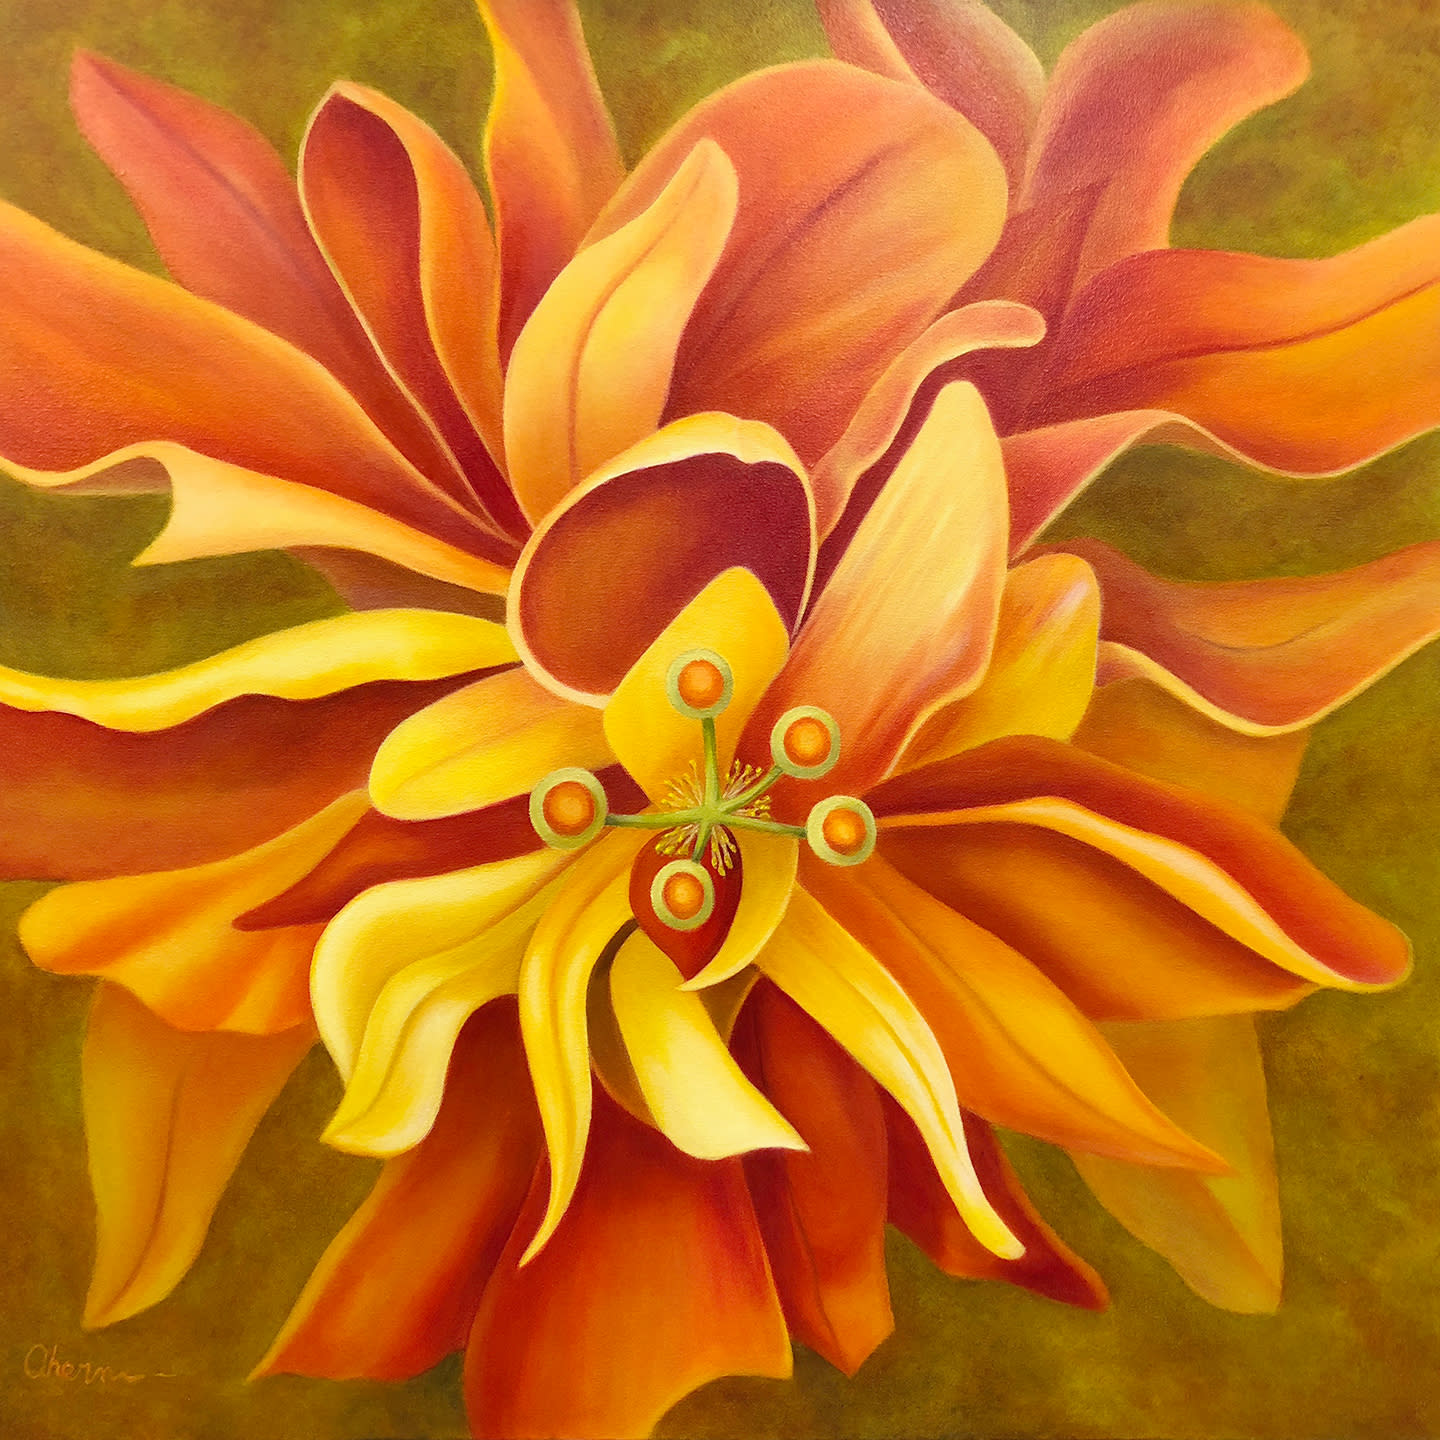 180427 ahern pay attention here orange hibiscus 20x72 b5fahg